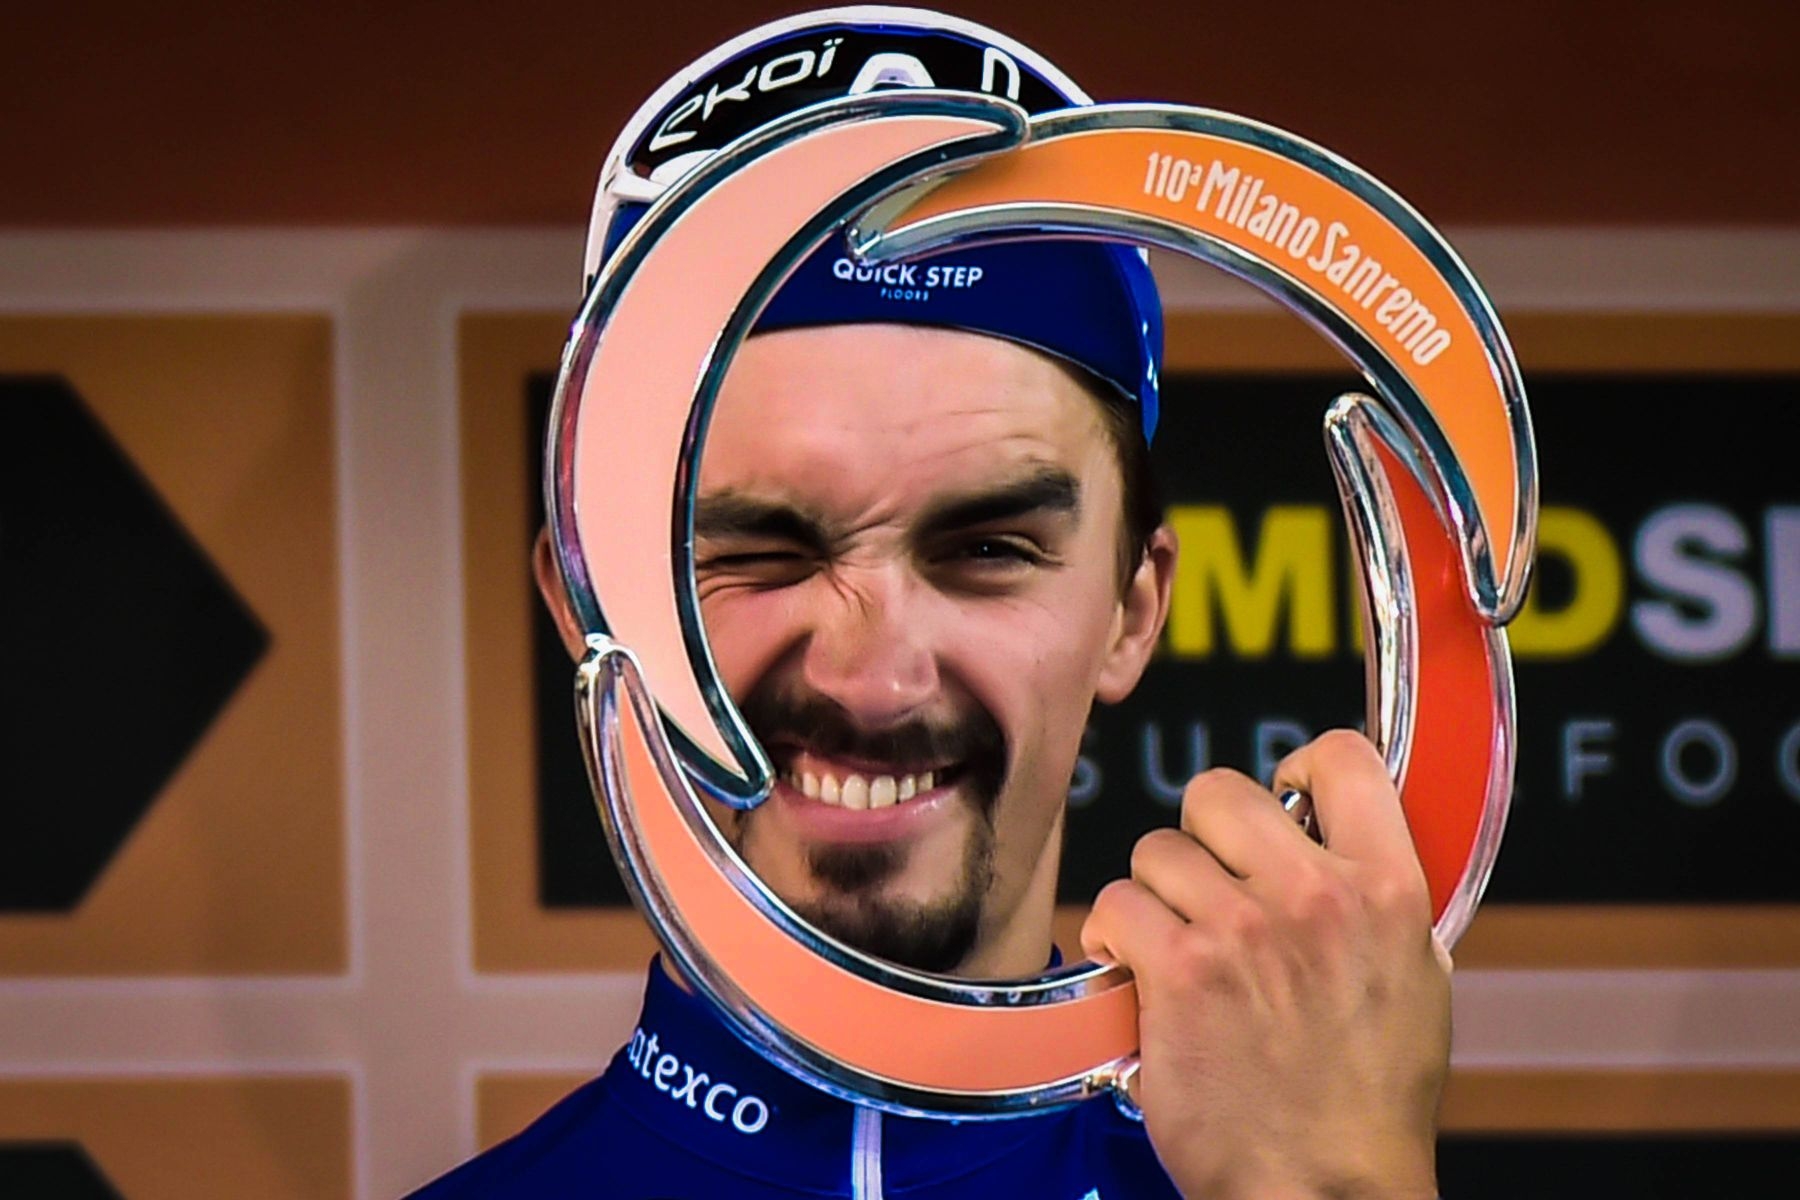 Julian Alaphilippe Victoire Monument Milan - SanRemo - Classical Bicycles